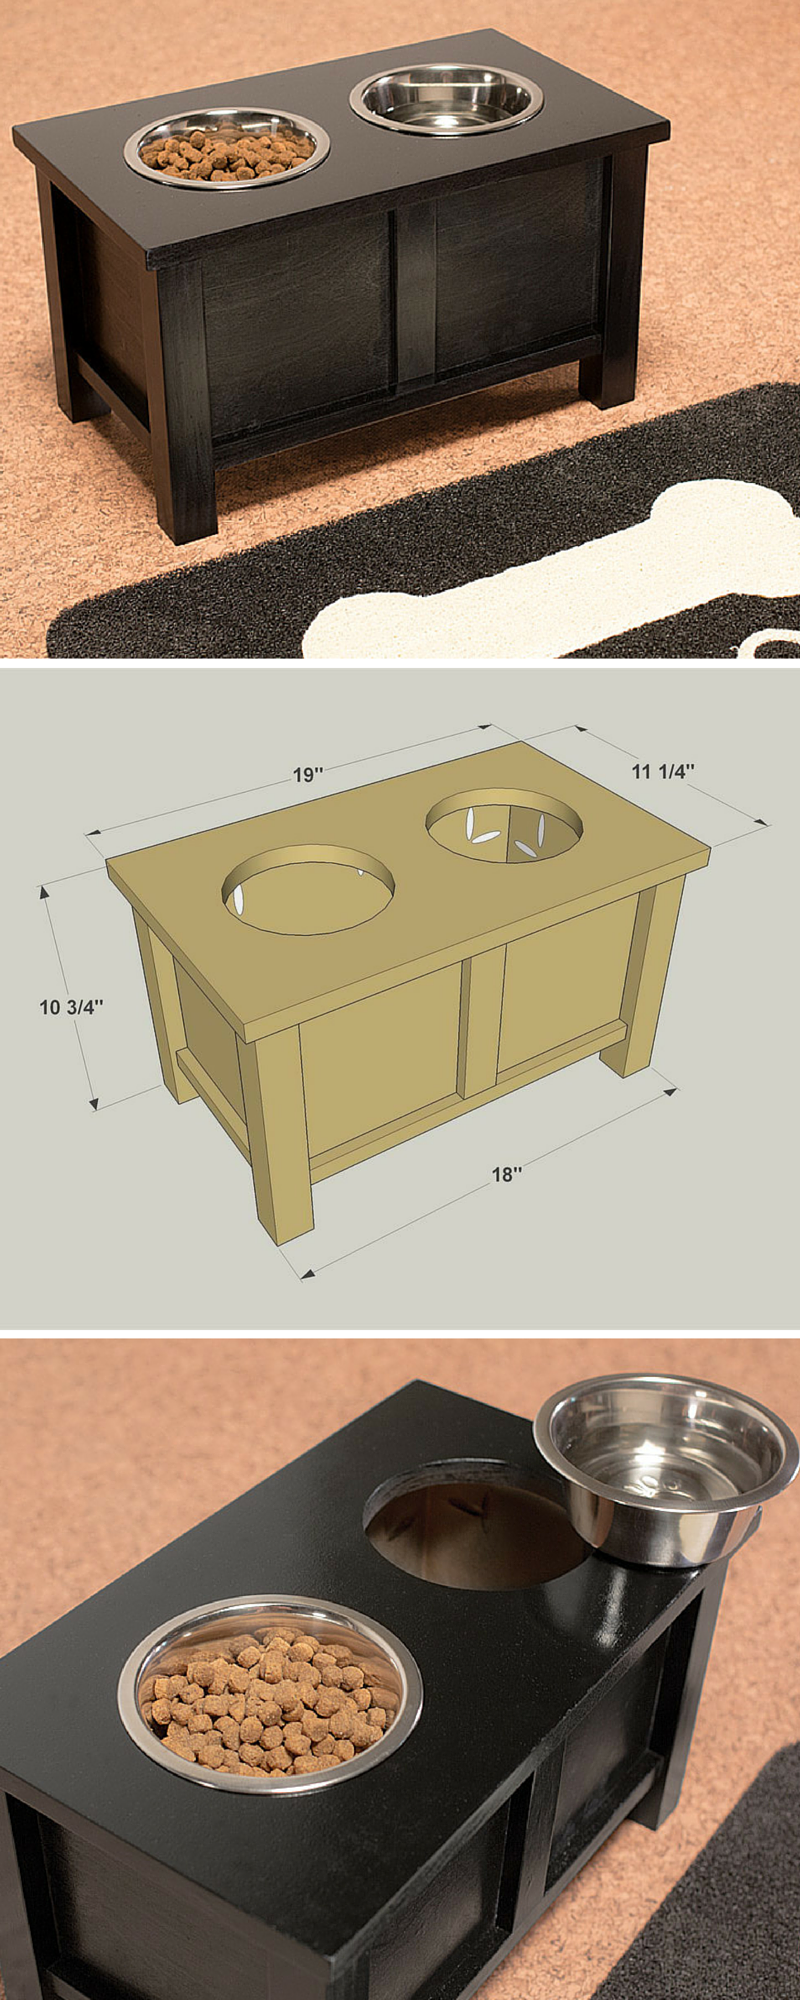 How To Build A Diy Raised Dog Bowl Stand Free Printable Project Plans At Buildsomething Elevate Your S Dining Experience With For